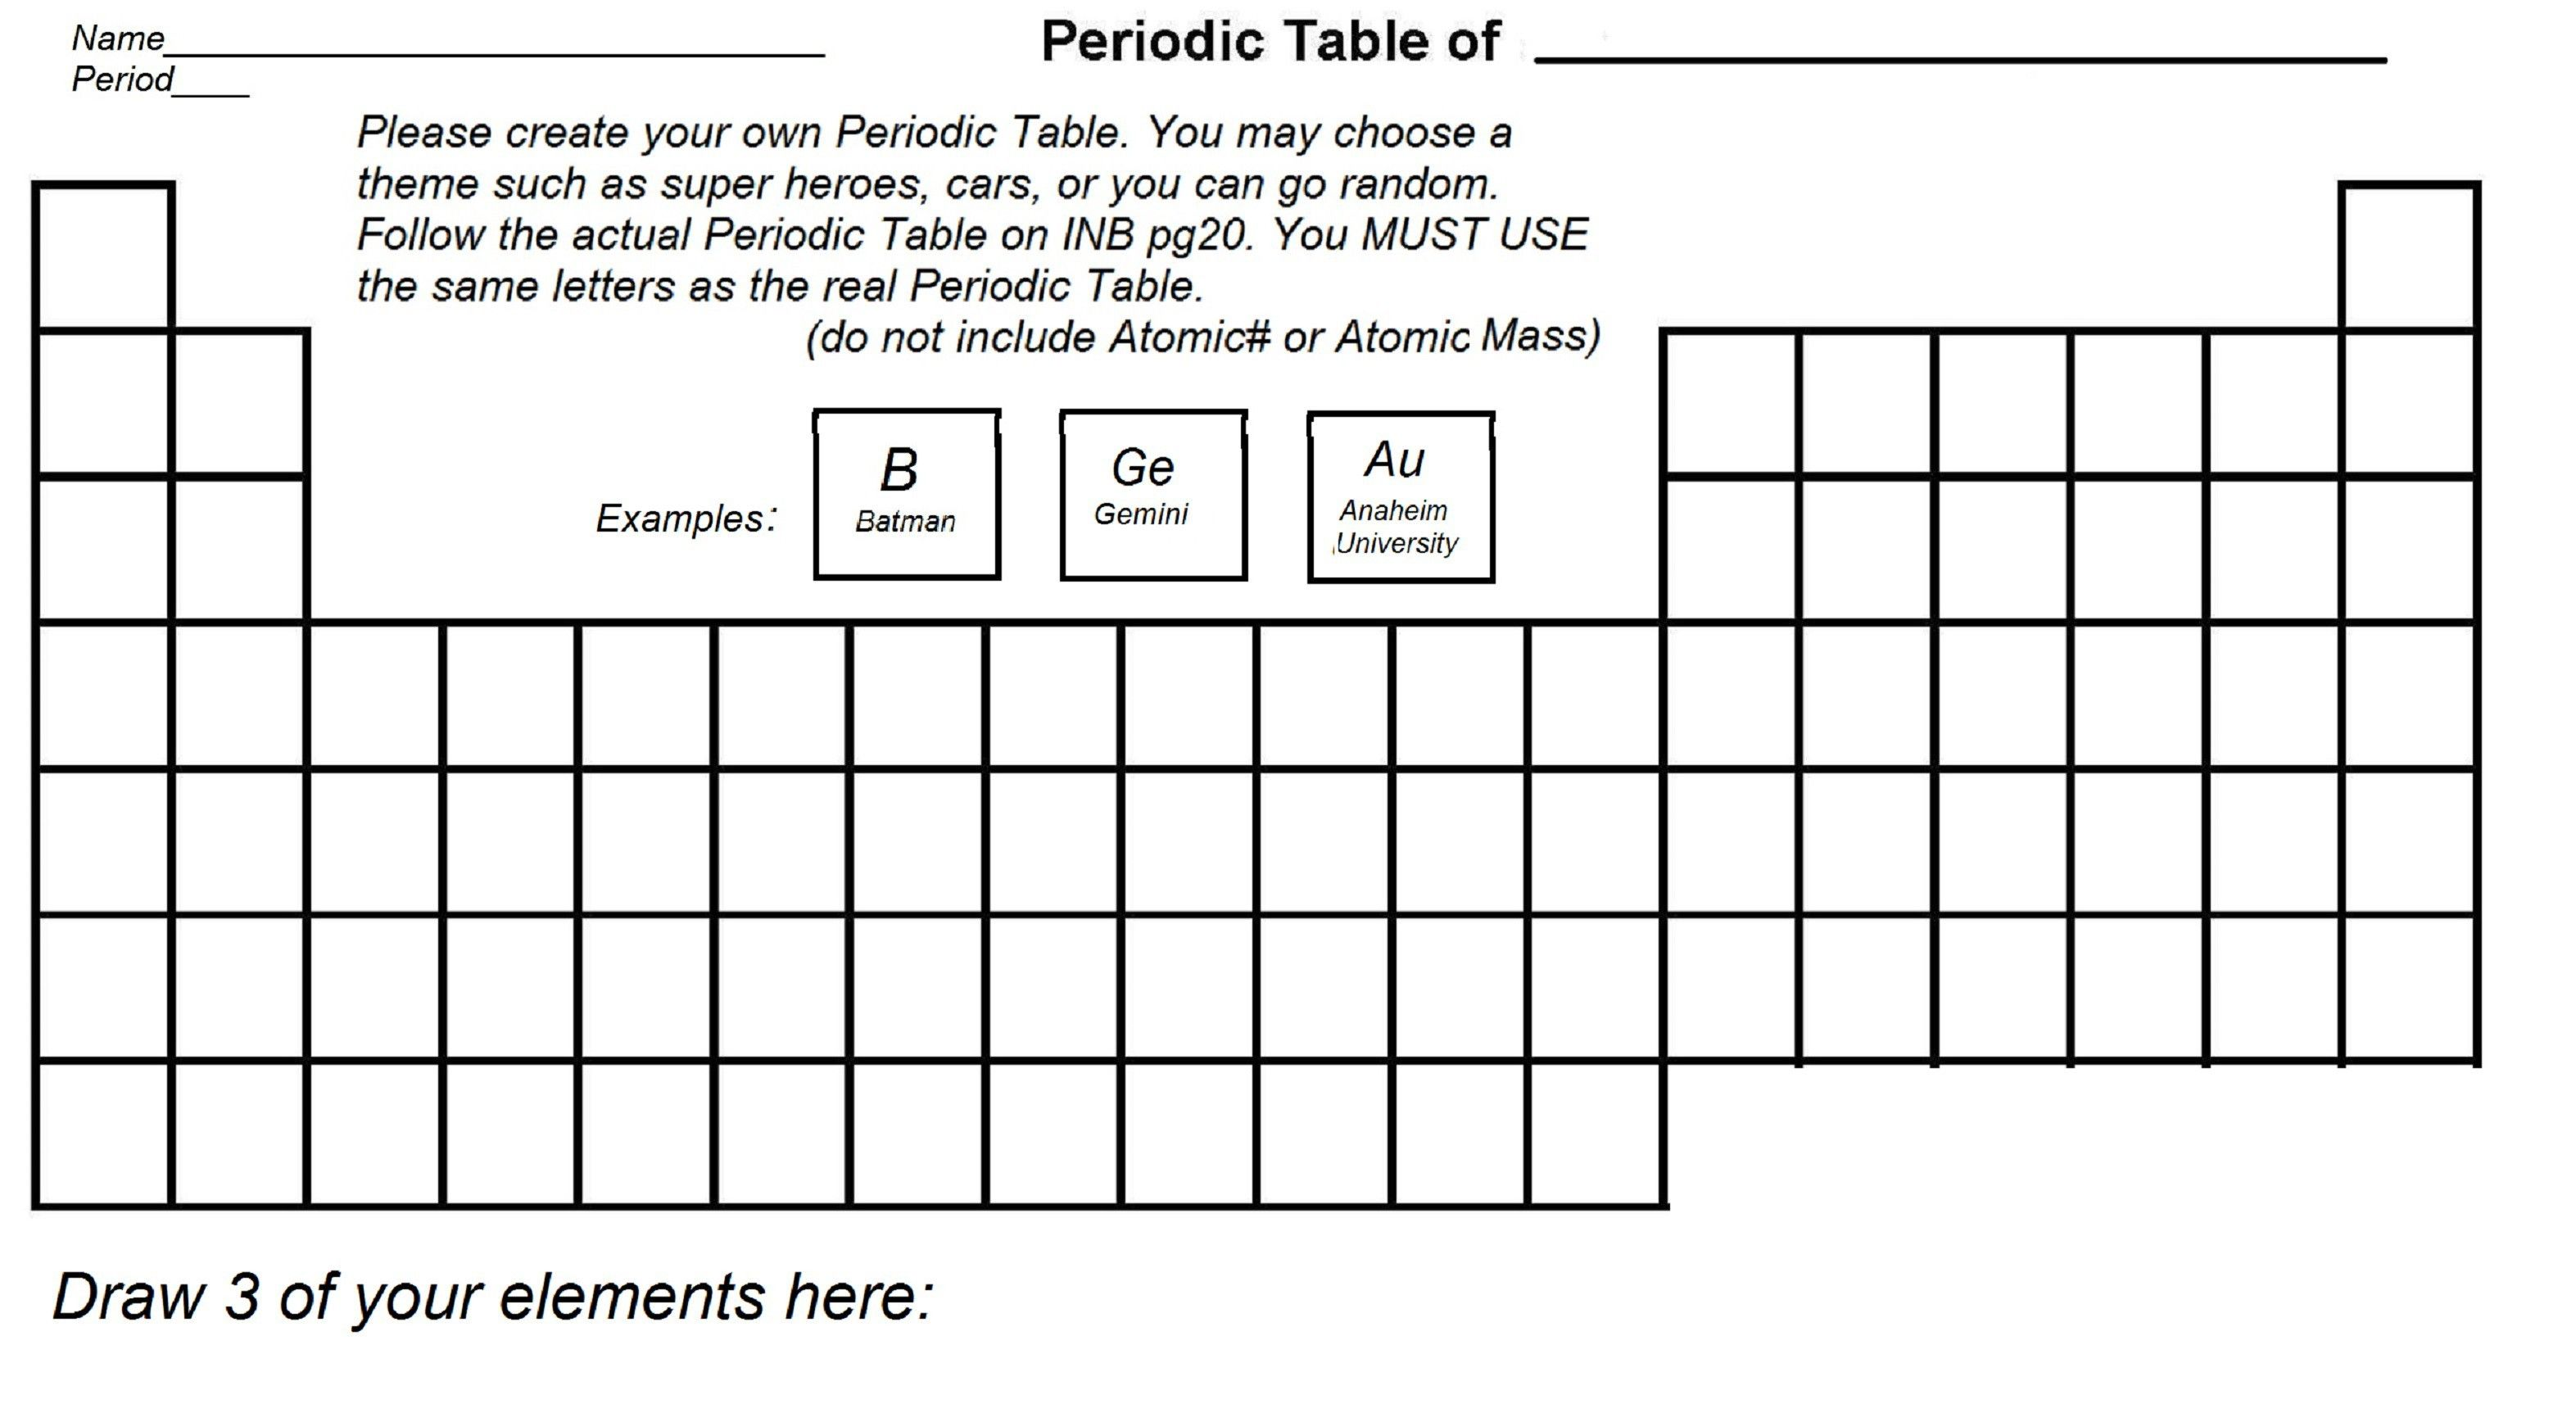 medium resolution of Blank Periodic Table With Elements #BlankPeriodicTable #PeriodicTableBlank    Letter recognition worksheets